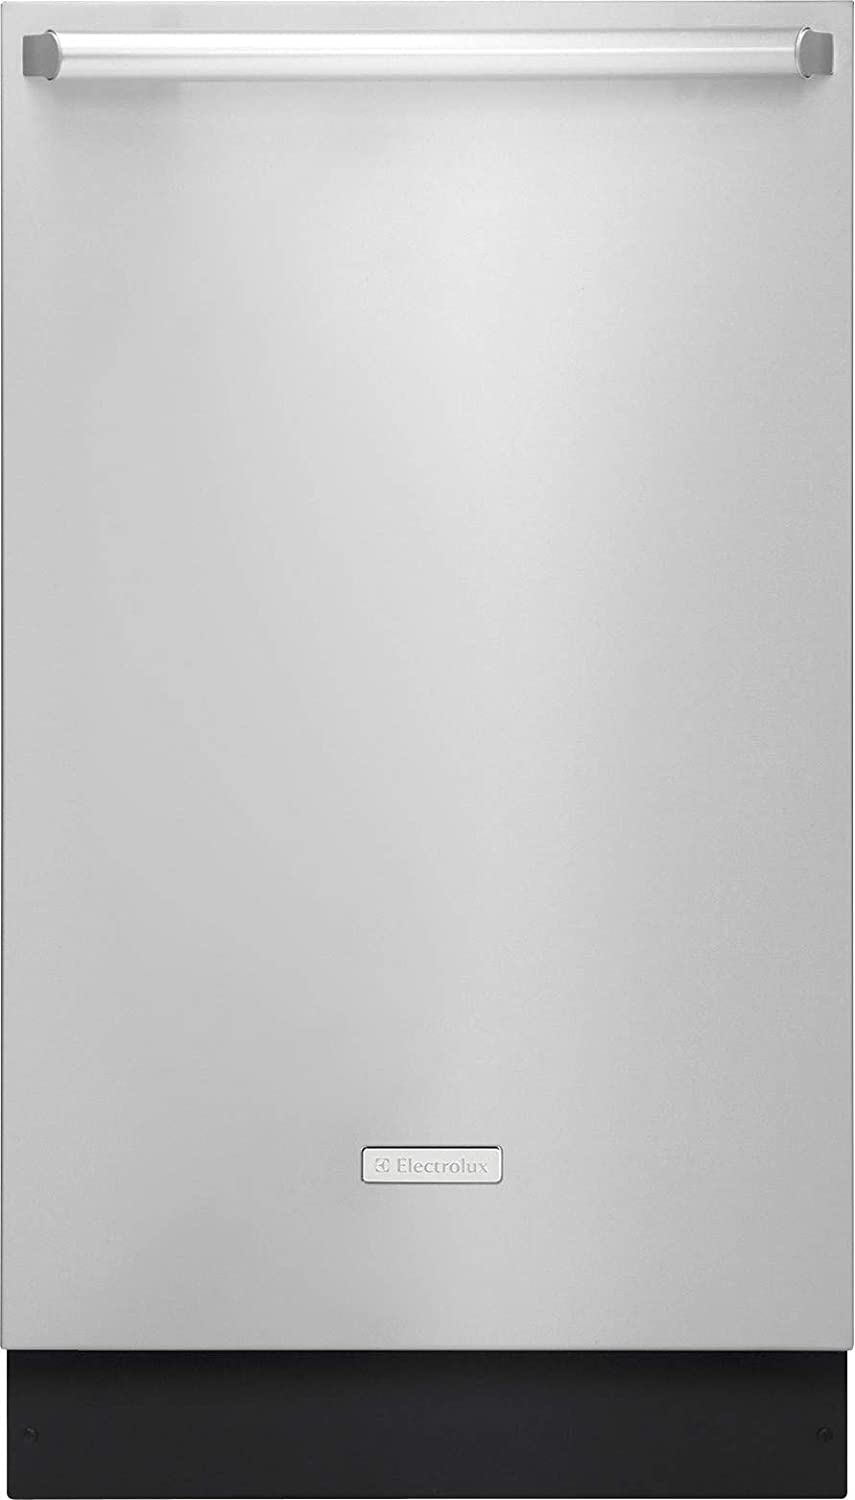 Electrolux EIDW1805KS IQ-Touch Stainless Steel Fully Integrated Dishwasher